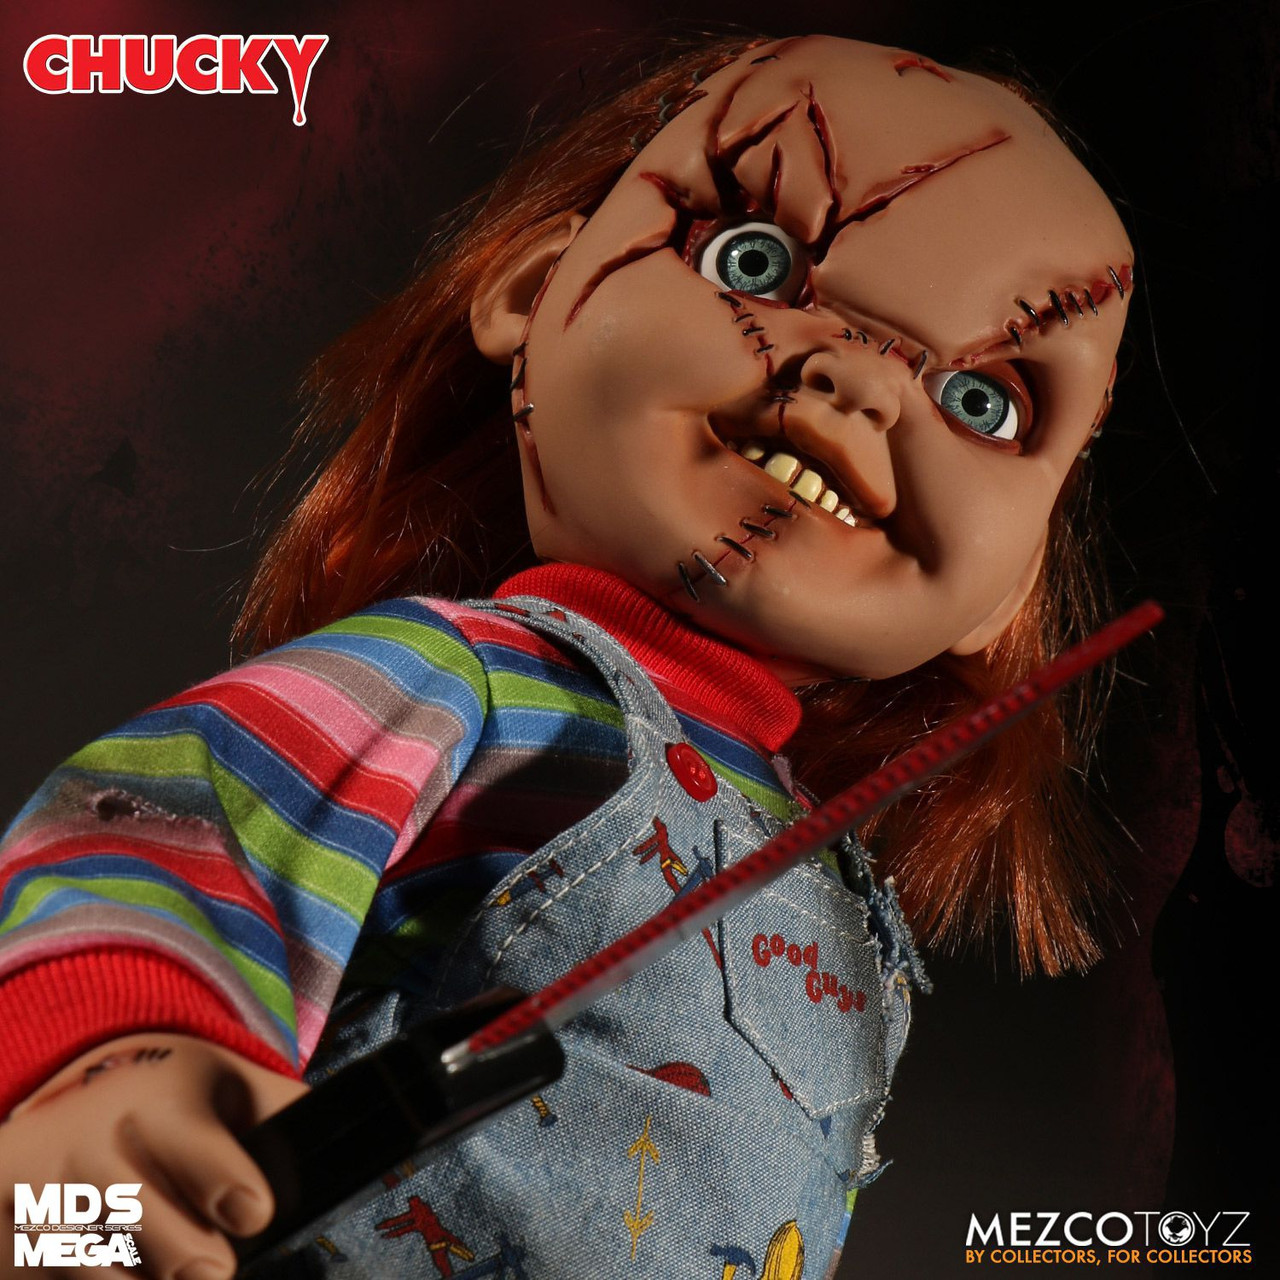 Child/'s Play Sneering Chucky Talking Mega-Scale 15-Inch Doll Official